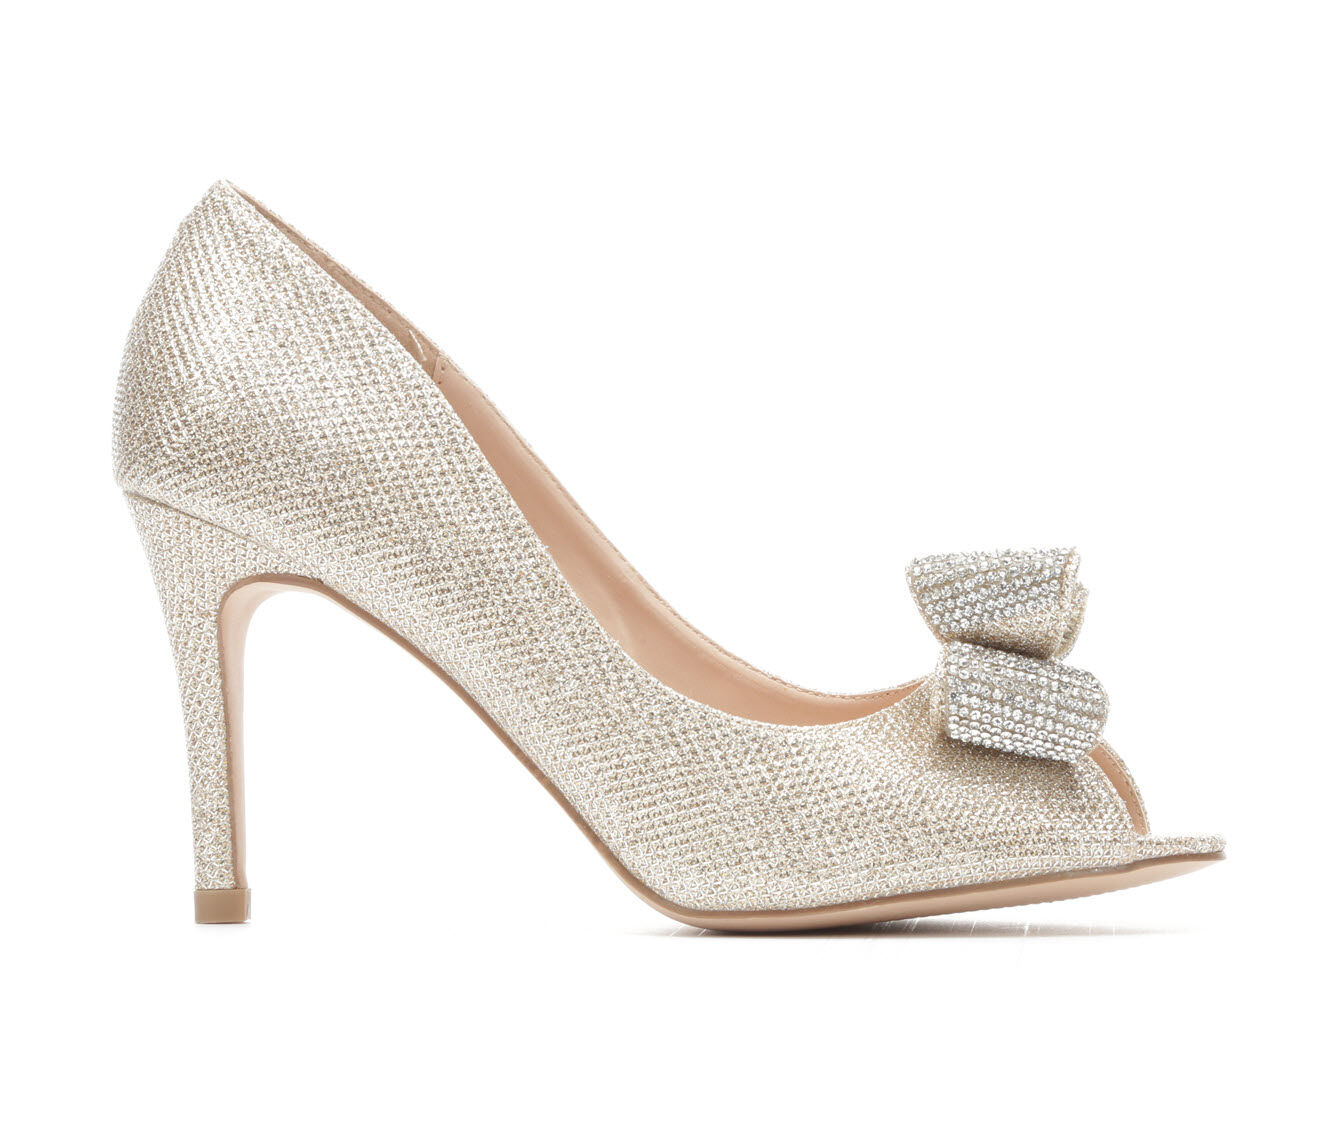 Women's LLorraine Jenna Peep Toe Pumps cheap release dates buy cheap how much free shipping 2014 lbR9aZELo6